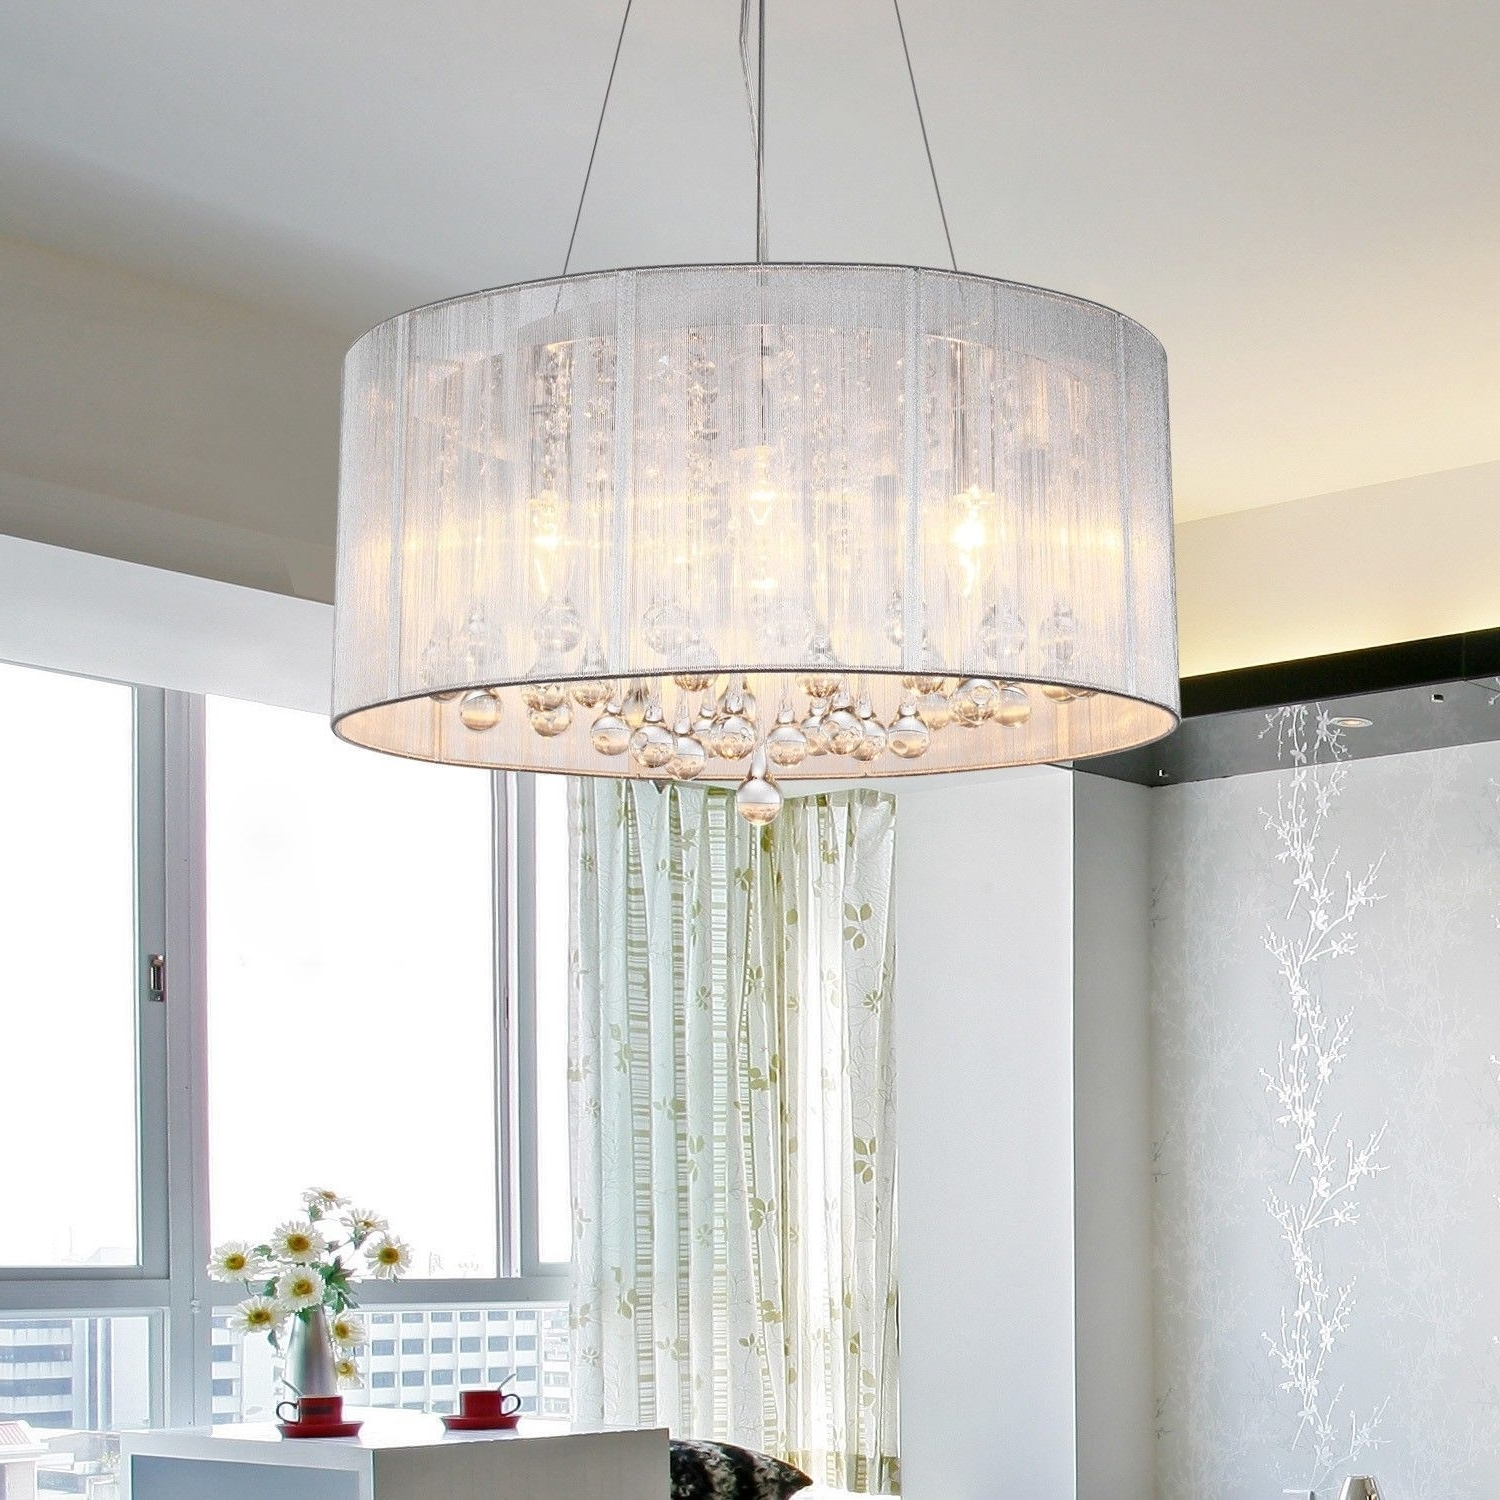 Chandelier Light Shades Within Fashionable Awesome Lamp Shades For Chandeliers Chandelier From The Elegant (View 8 of 20)